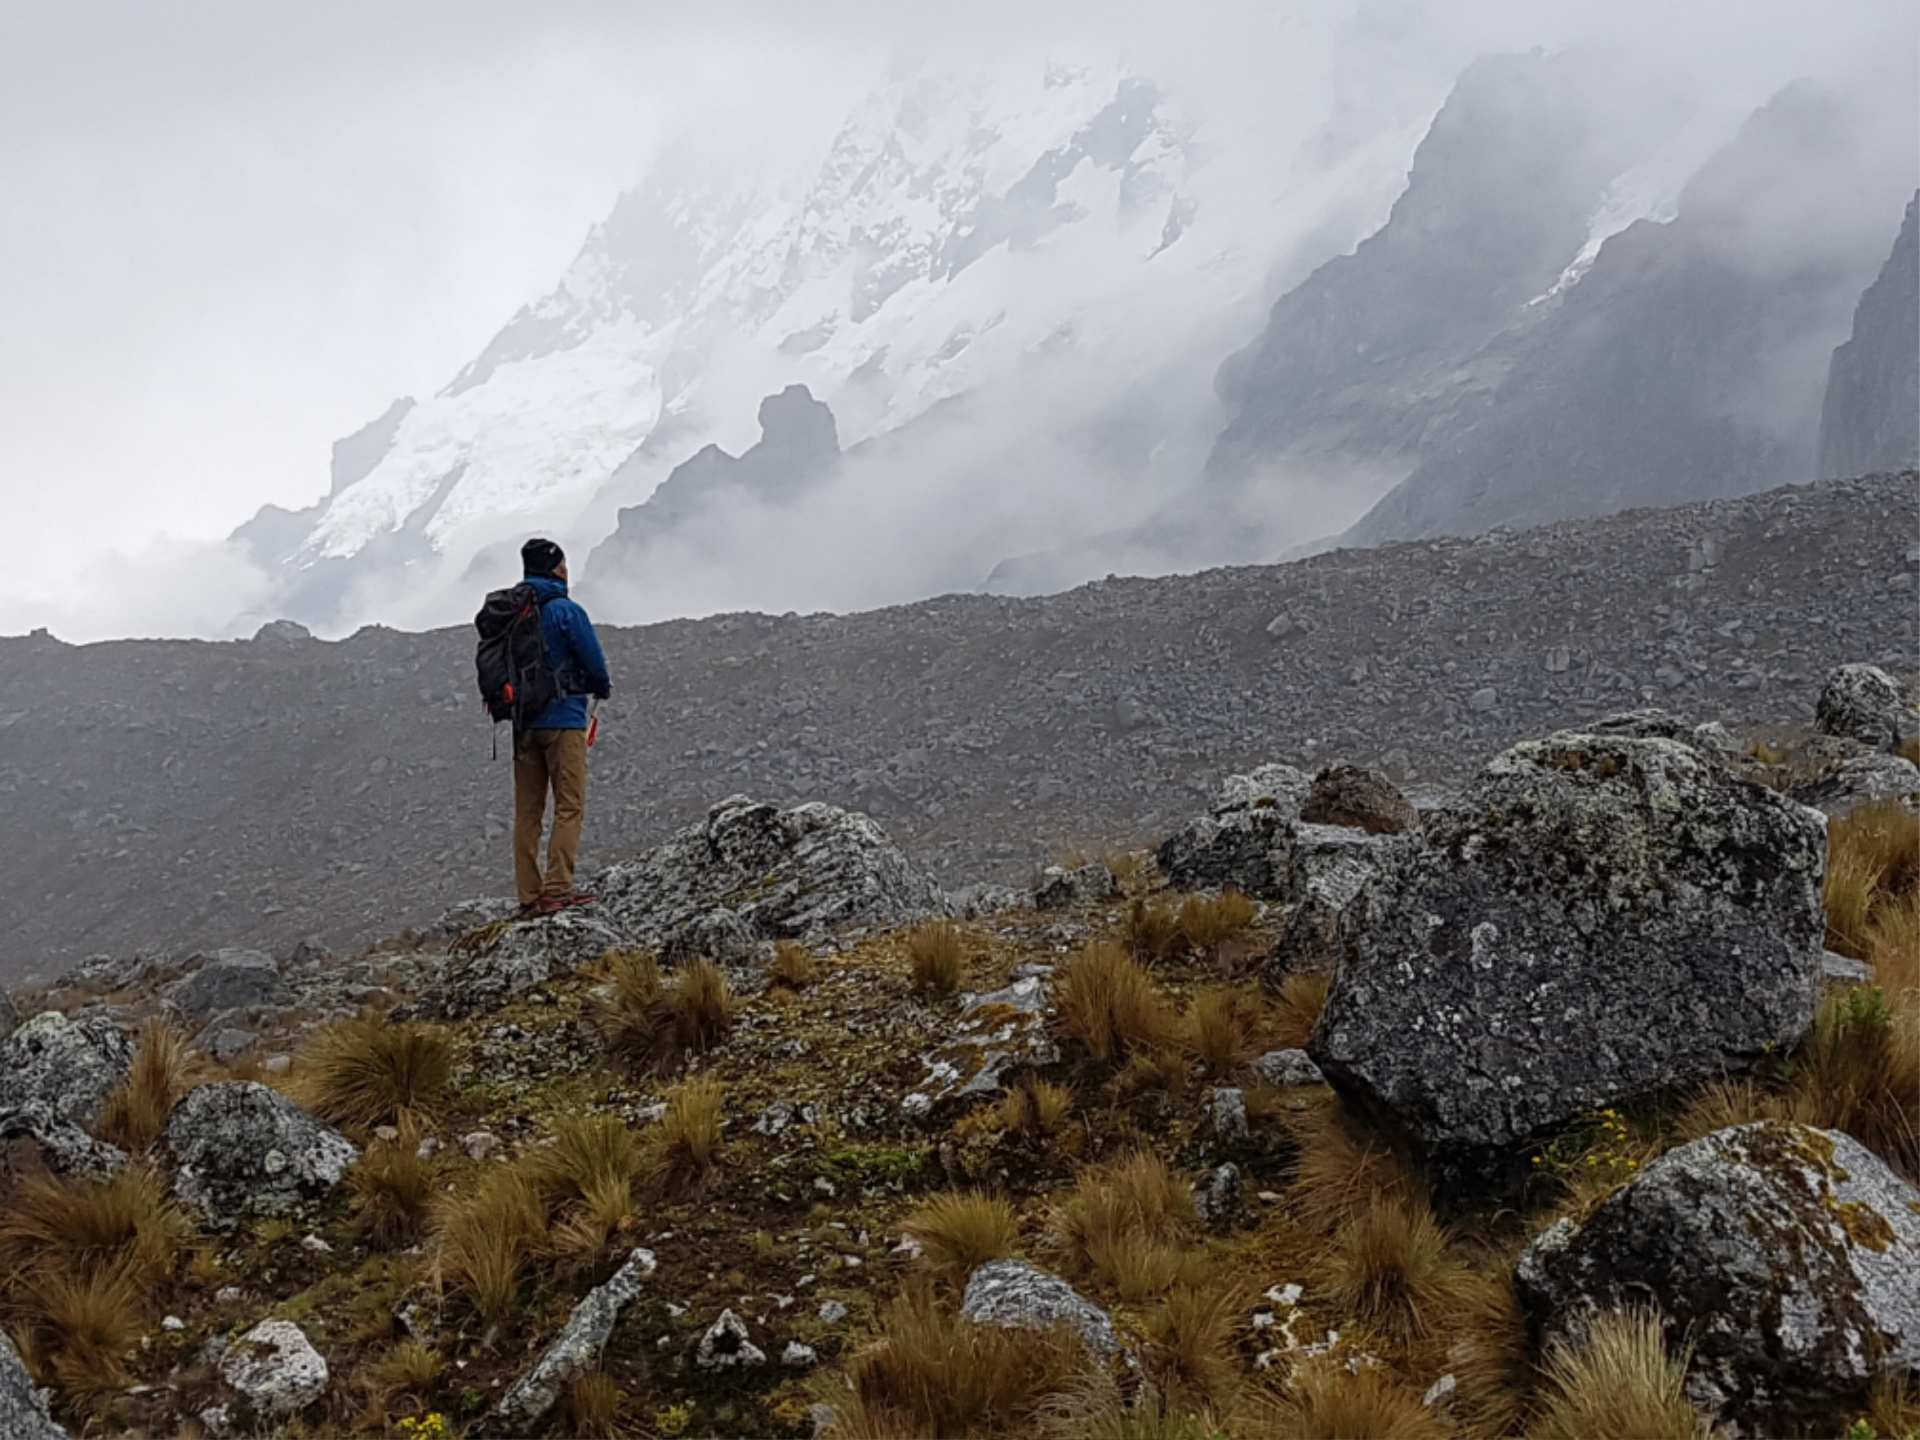 http://infromtheoutpost.com Salkantay Trek views, Andes mountains, Jeff Fuchs